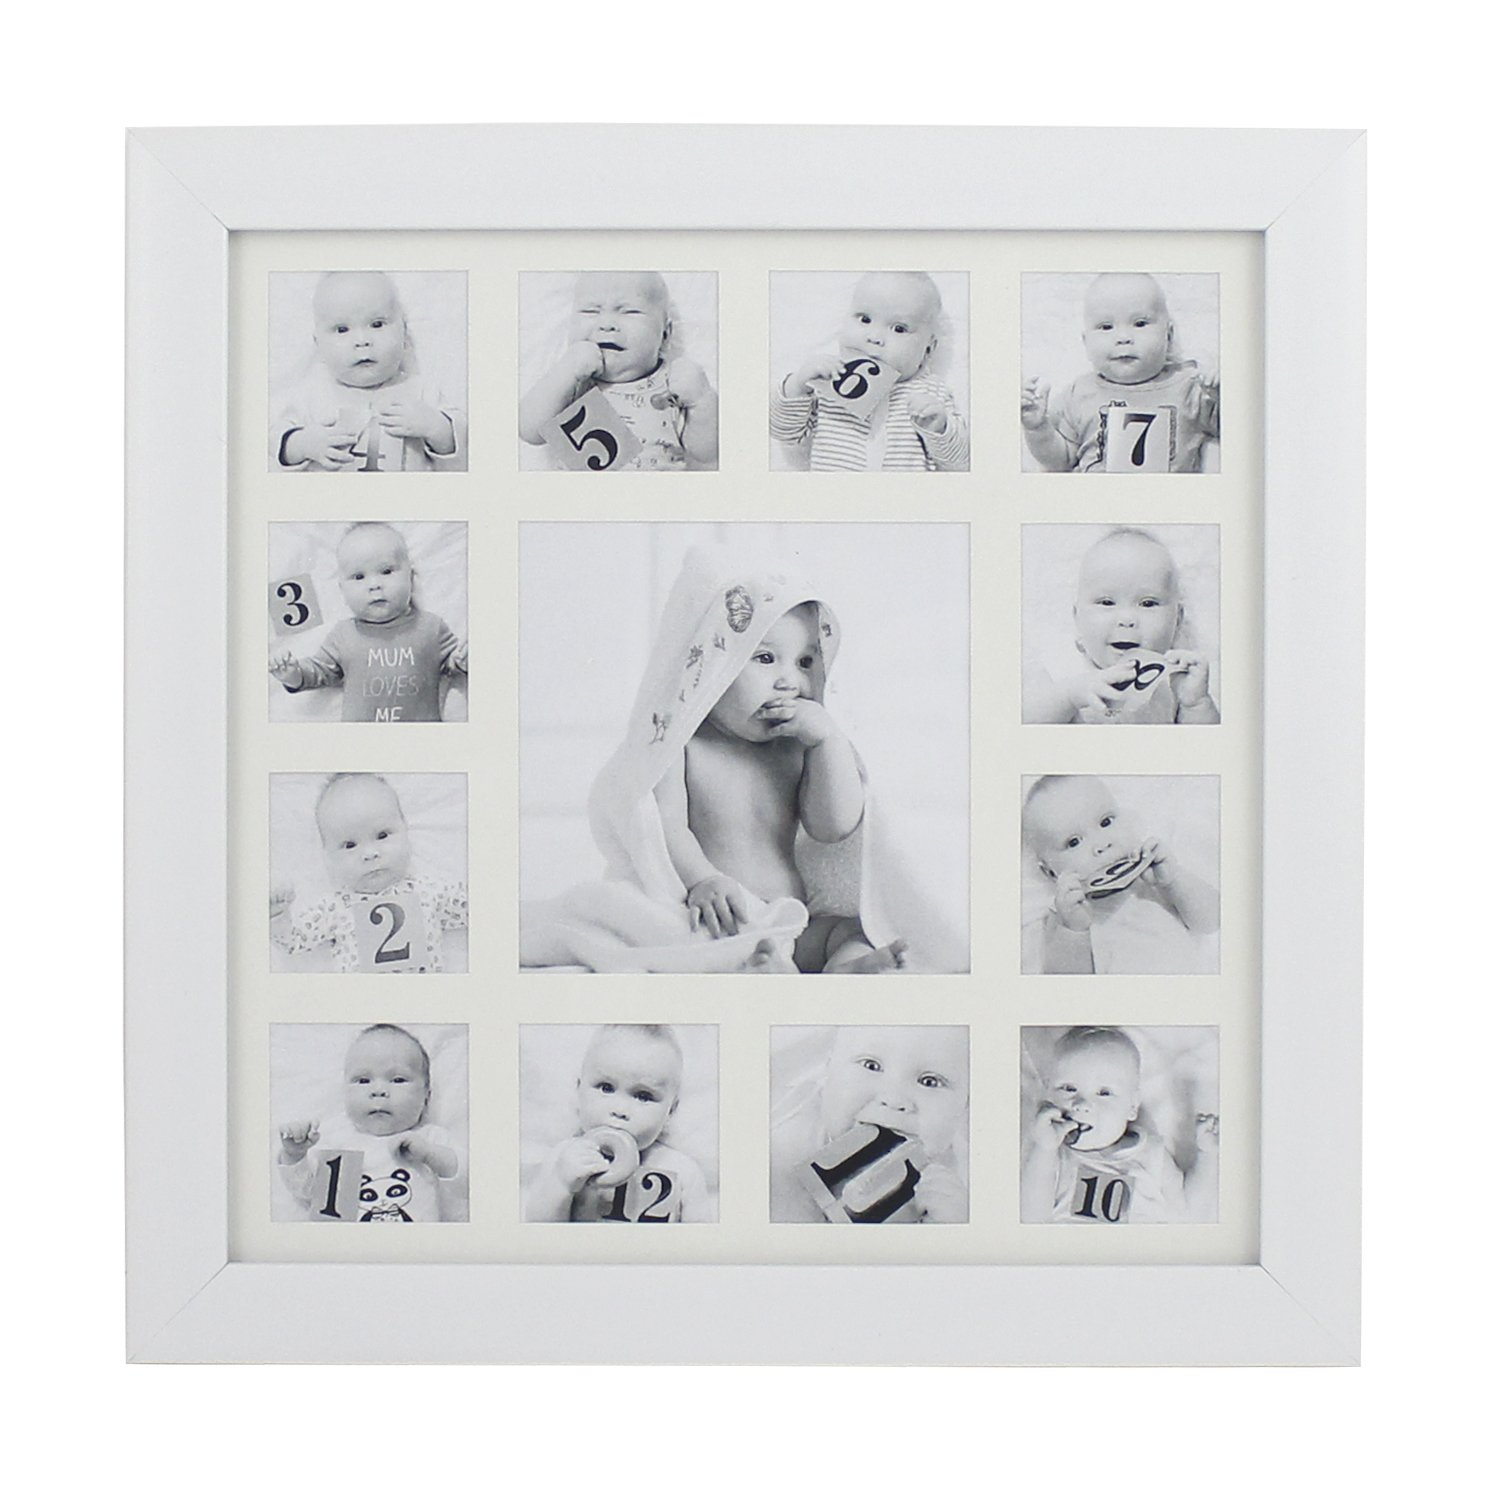 Beriwinkle Baby Photo 13 Opening My First Year Collage Frame for Newborn Girls or Boys, Unique Baby Shower Gift for Registry, Memorable Keepsake Frame for Room Wall or Nursery Décor, White